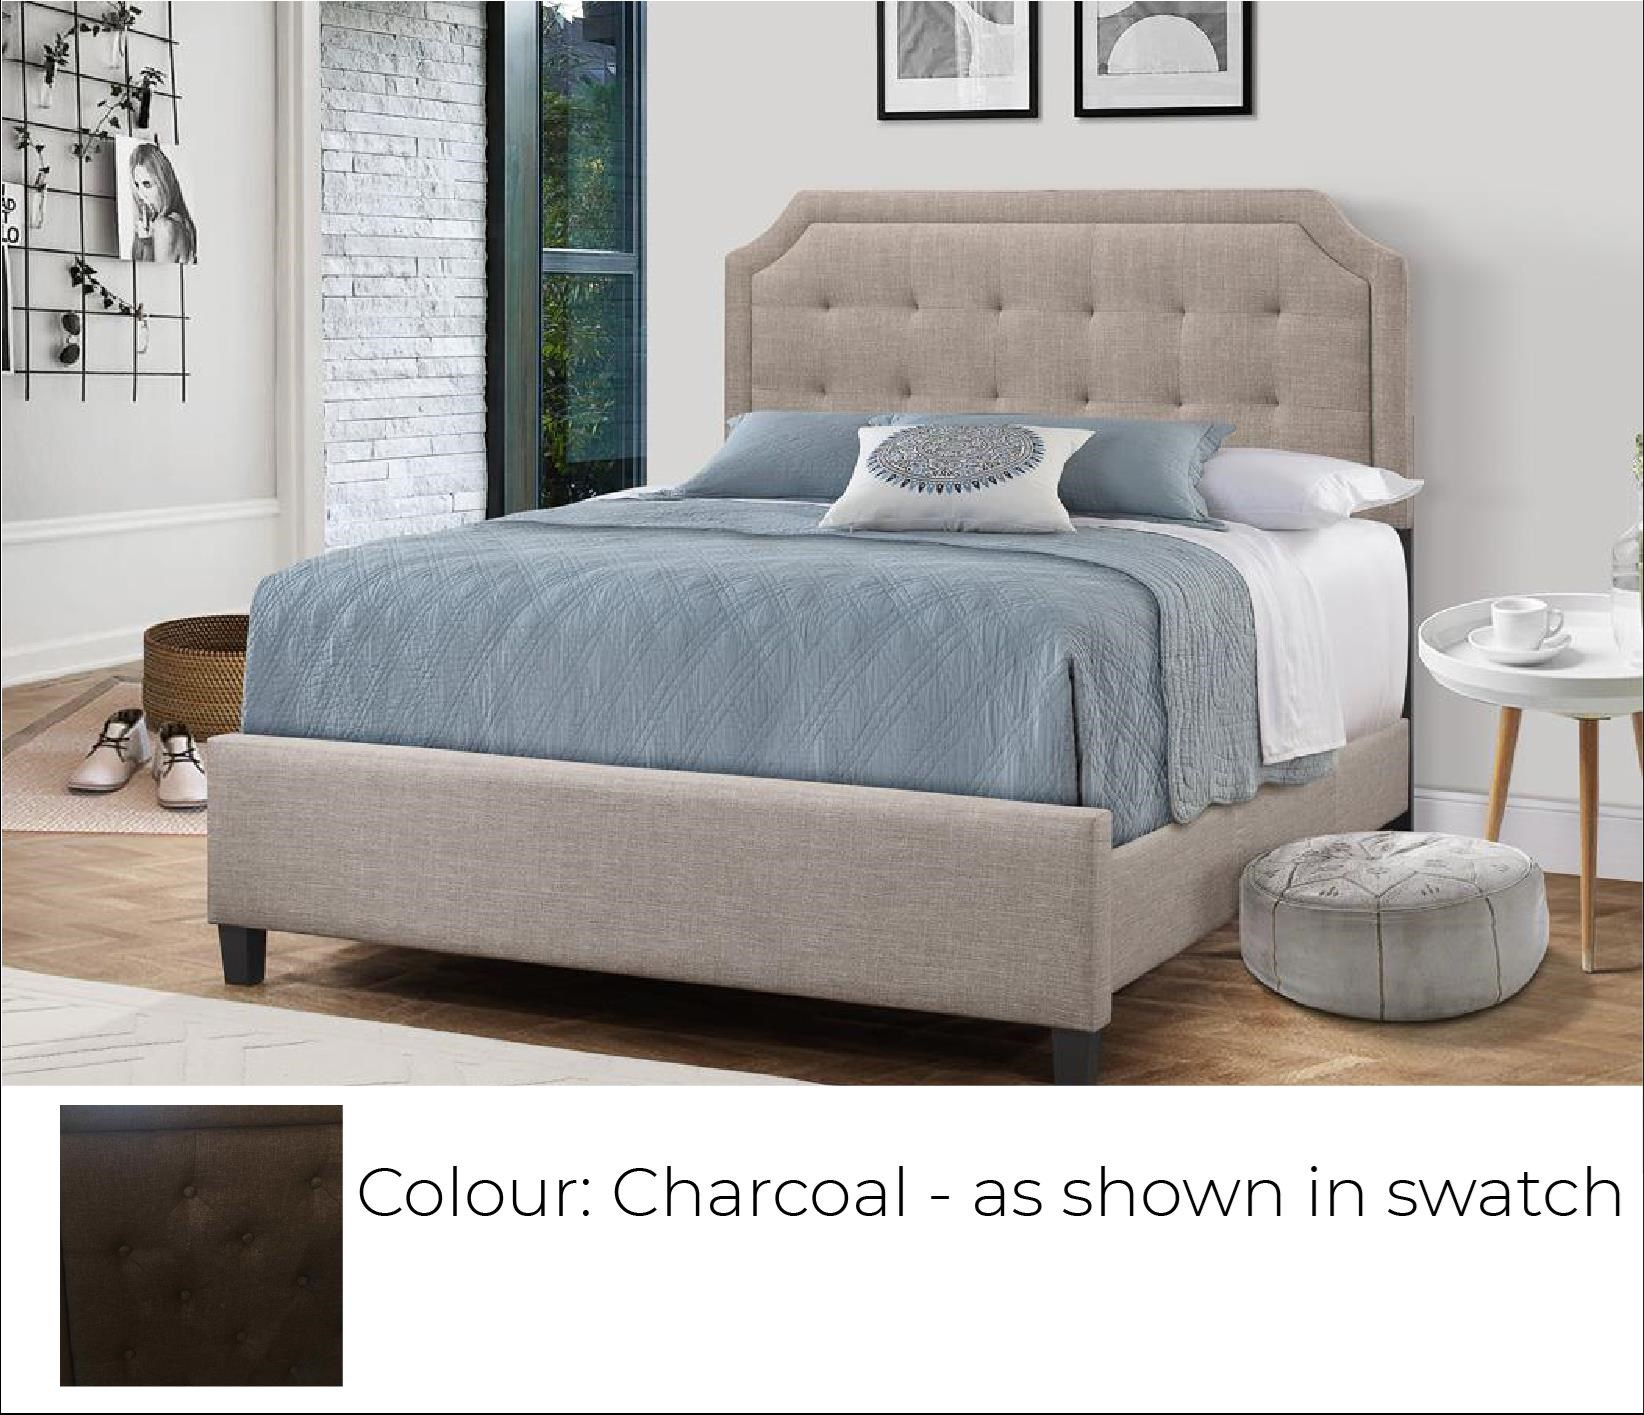 B623 - Ready to Assemble Upholstered Bed - Charcoal at Bennett's Furniture and Mattresses